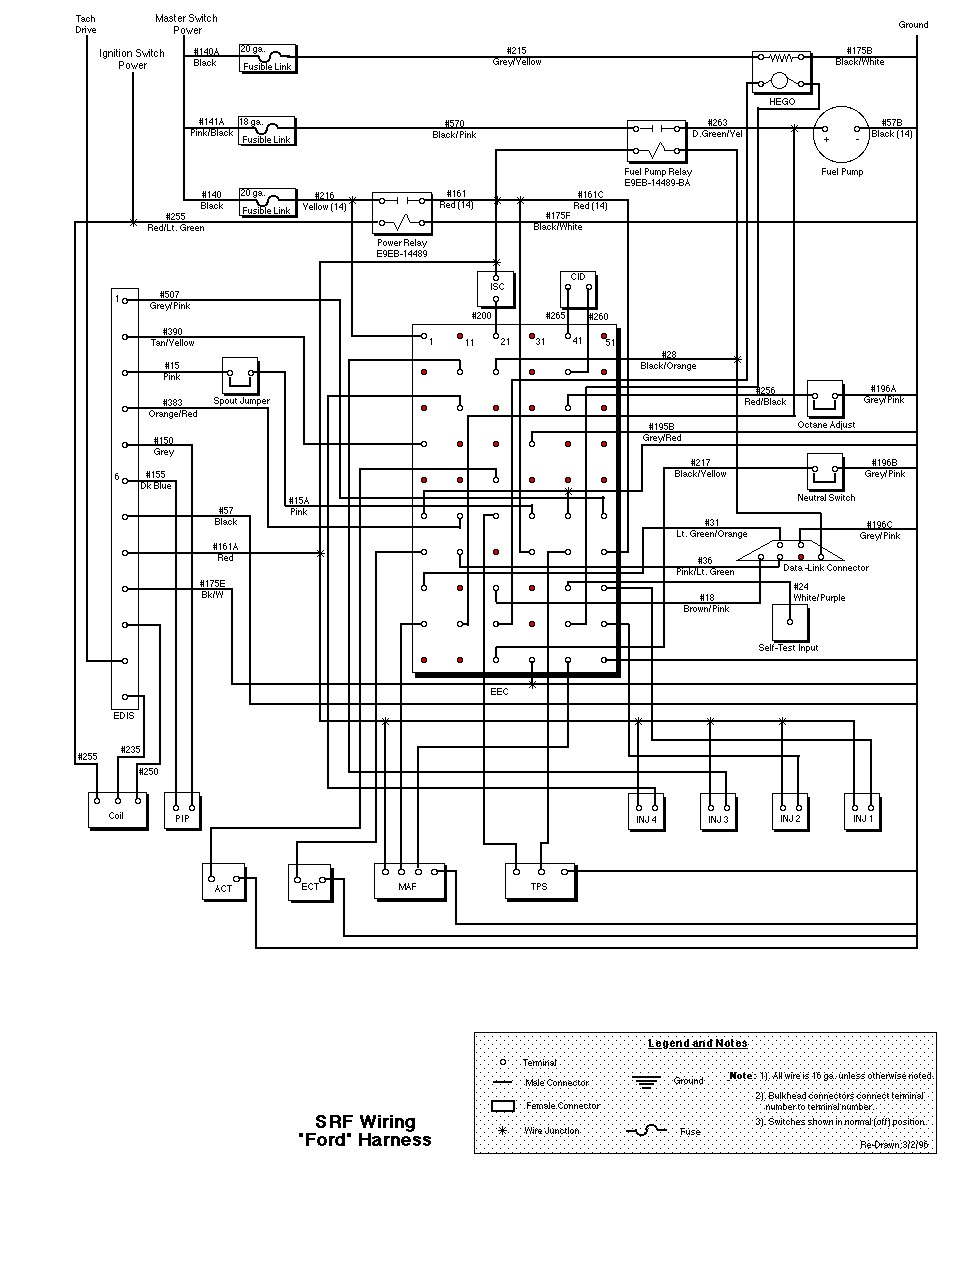 wiring diagram 1995 ford l8000 wiring free engine image 1996 ford l8000 wiring schematic dashboard ford l8000 wiring schematic